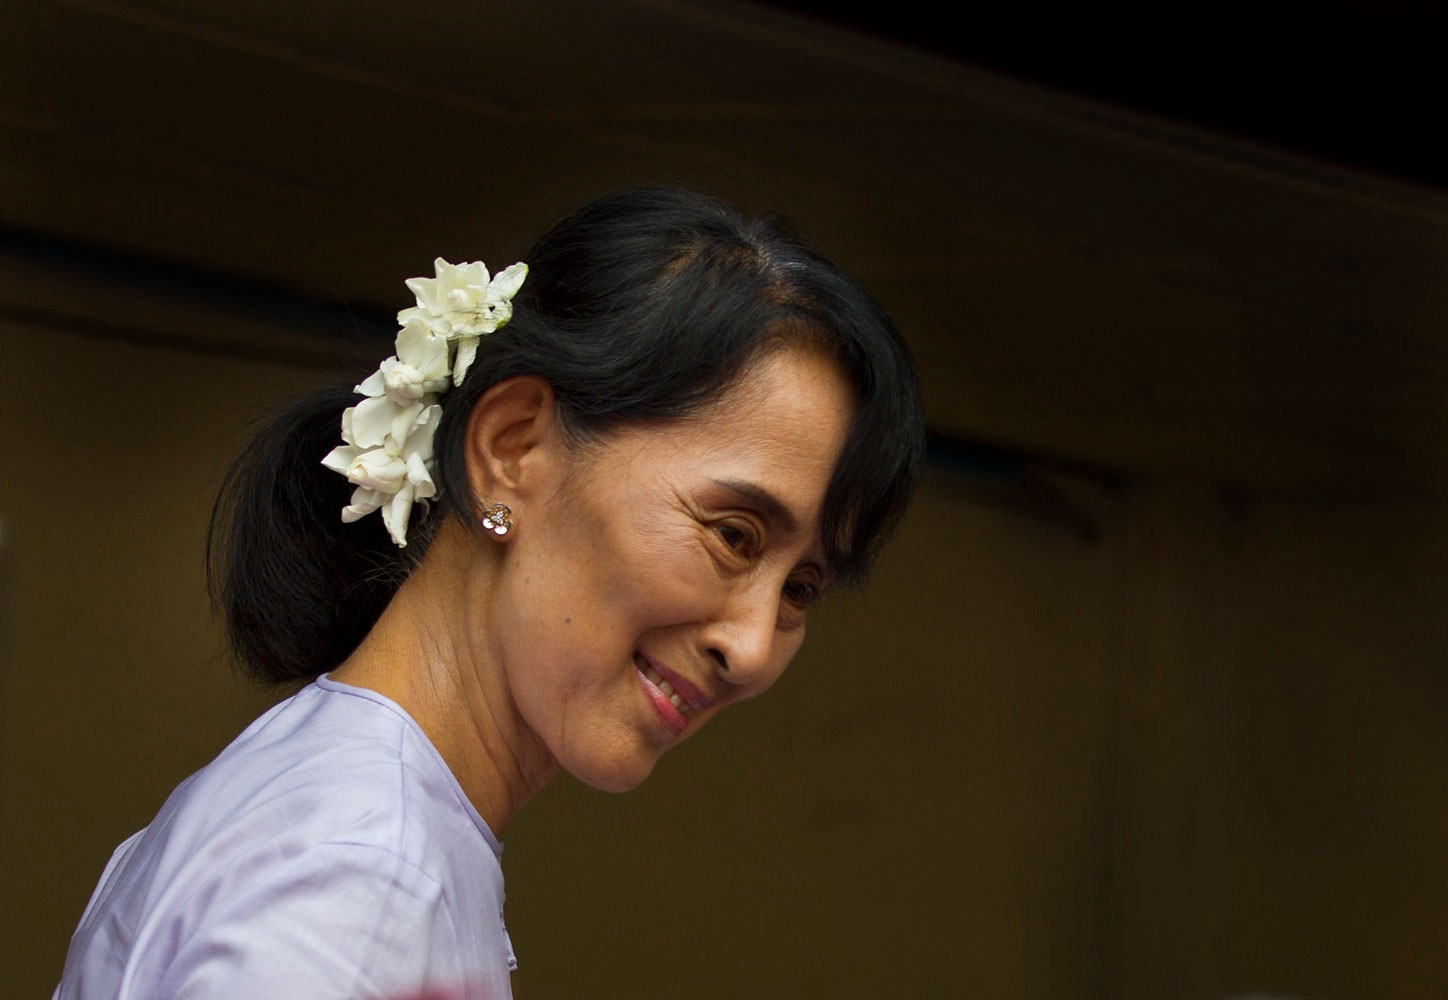 Leadership Secrets Of Myanmars Aung San Suu Kyi  Perry Thomas  Leading Change Is Hard Leading An Entire Nation Through Change  From  Military Rule Toward Democracy  Is Perhaps The Most Challenging Job Any  Leader Could  Computer Science Essay Topics also Persuasive Essay Examples For High School Sample Essay For High School Students